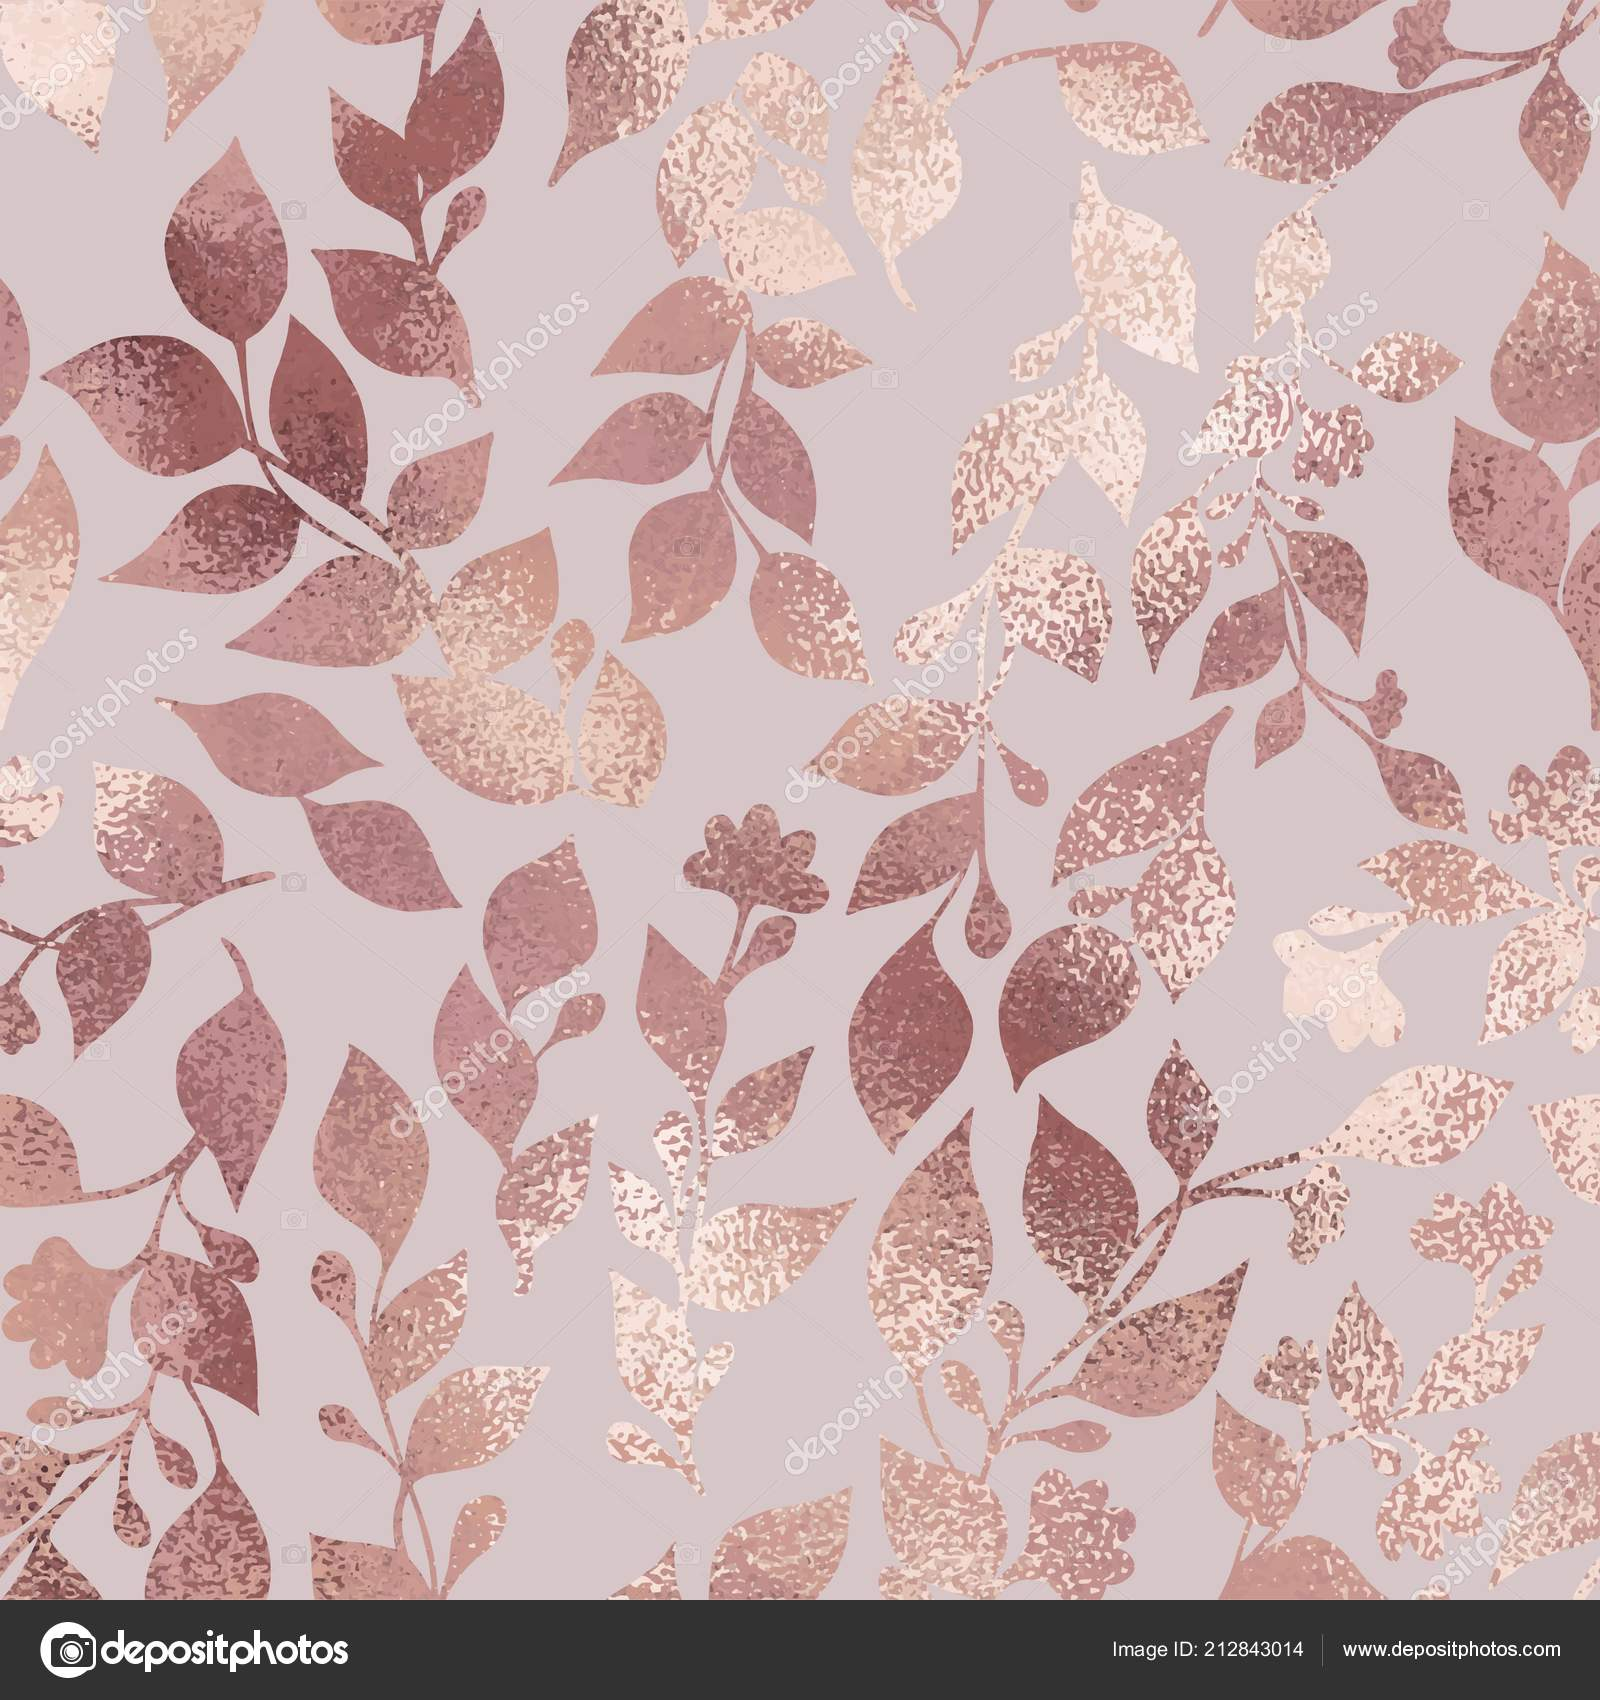 Rose Gold Elegant Texture Floral Pattern Design Invitations Cards